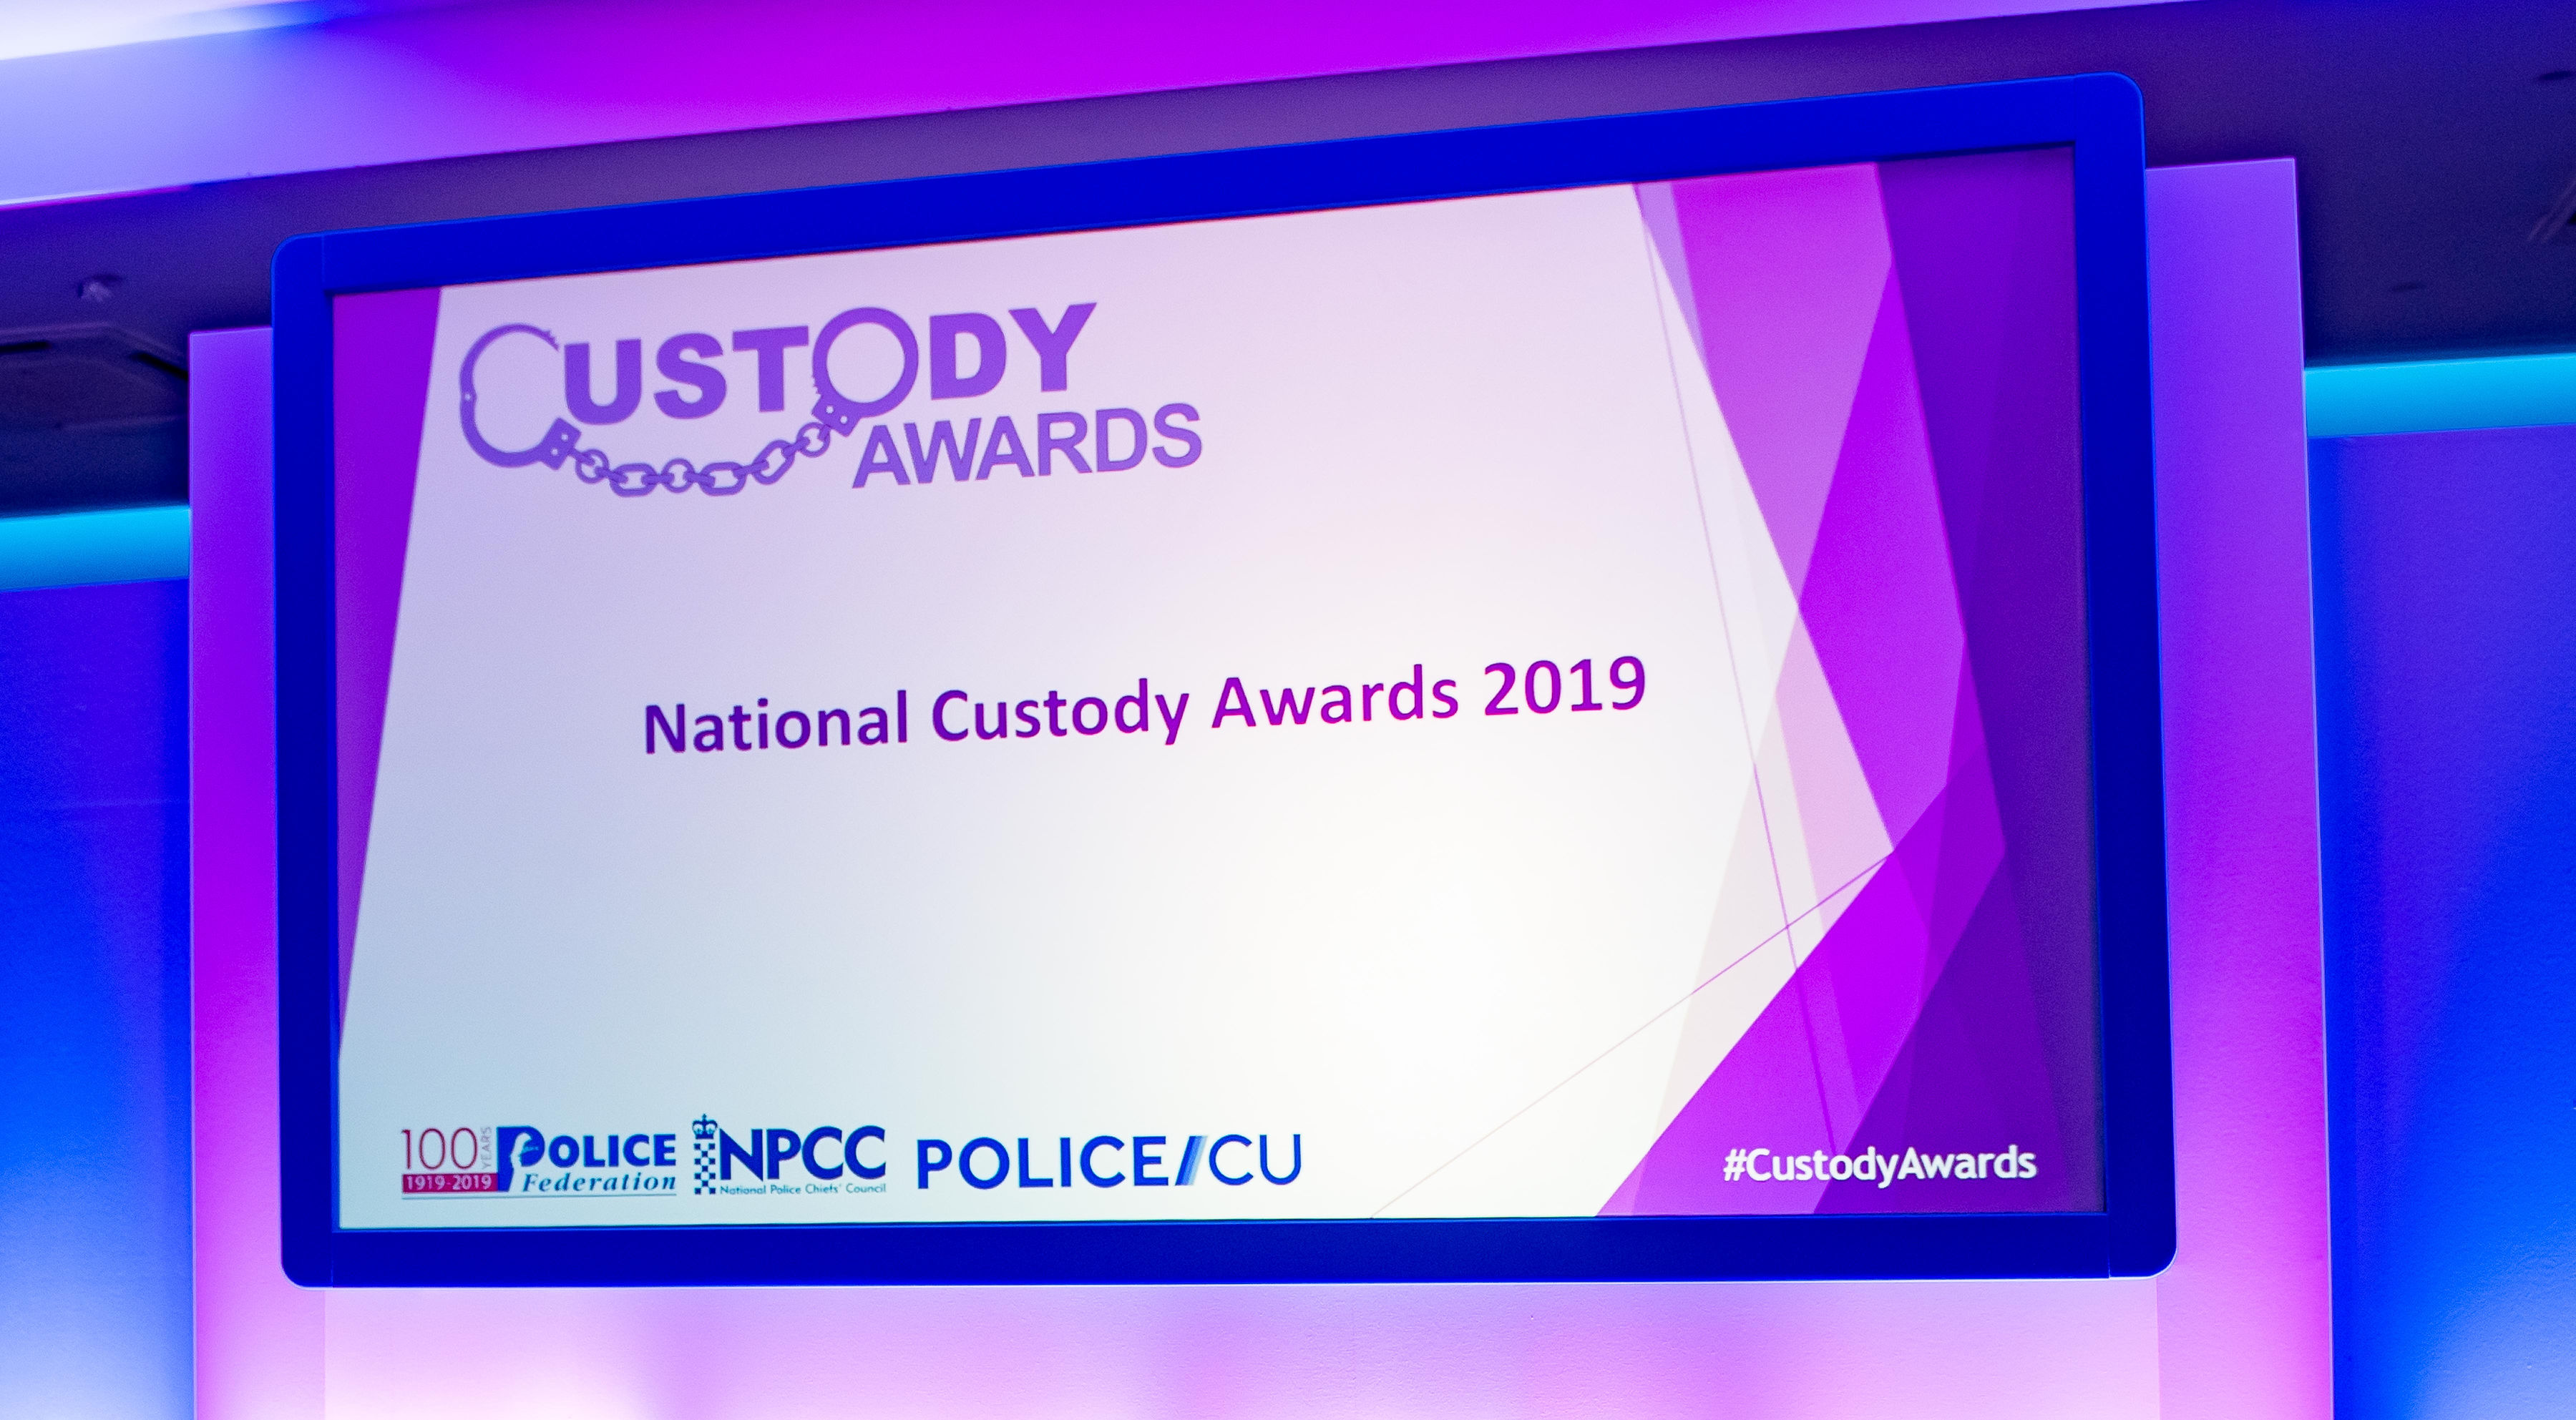 National Custody Awards